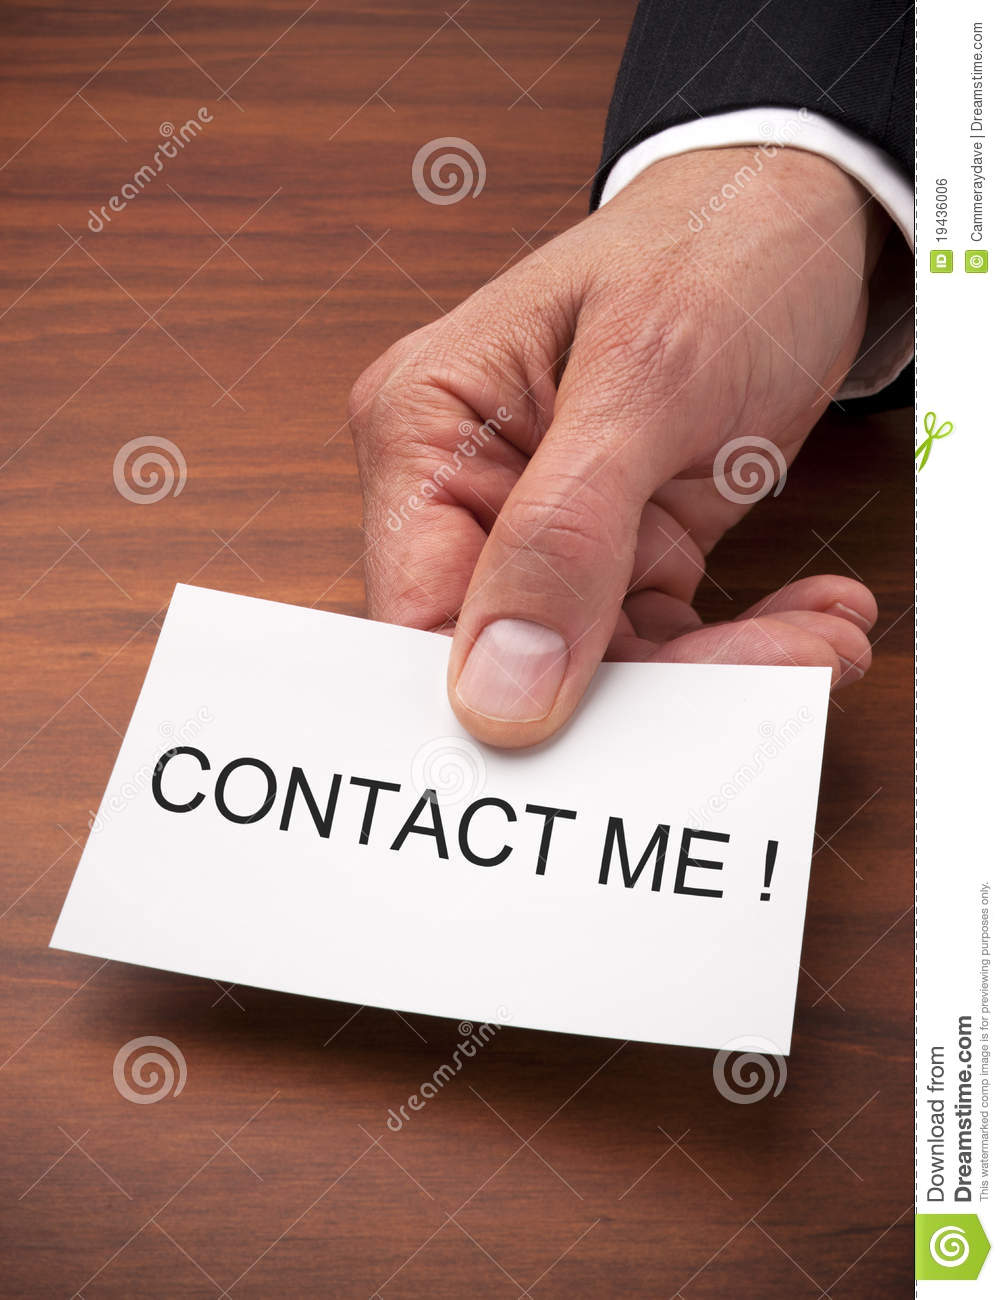 Contact Me Business Card Royalty Free Stock Image Image